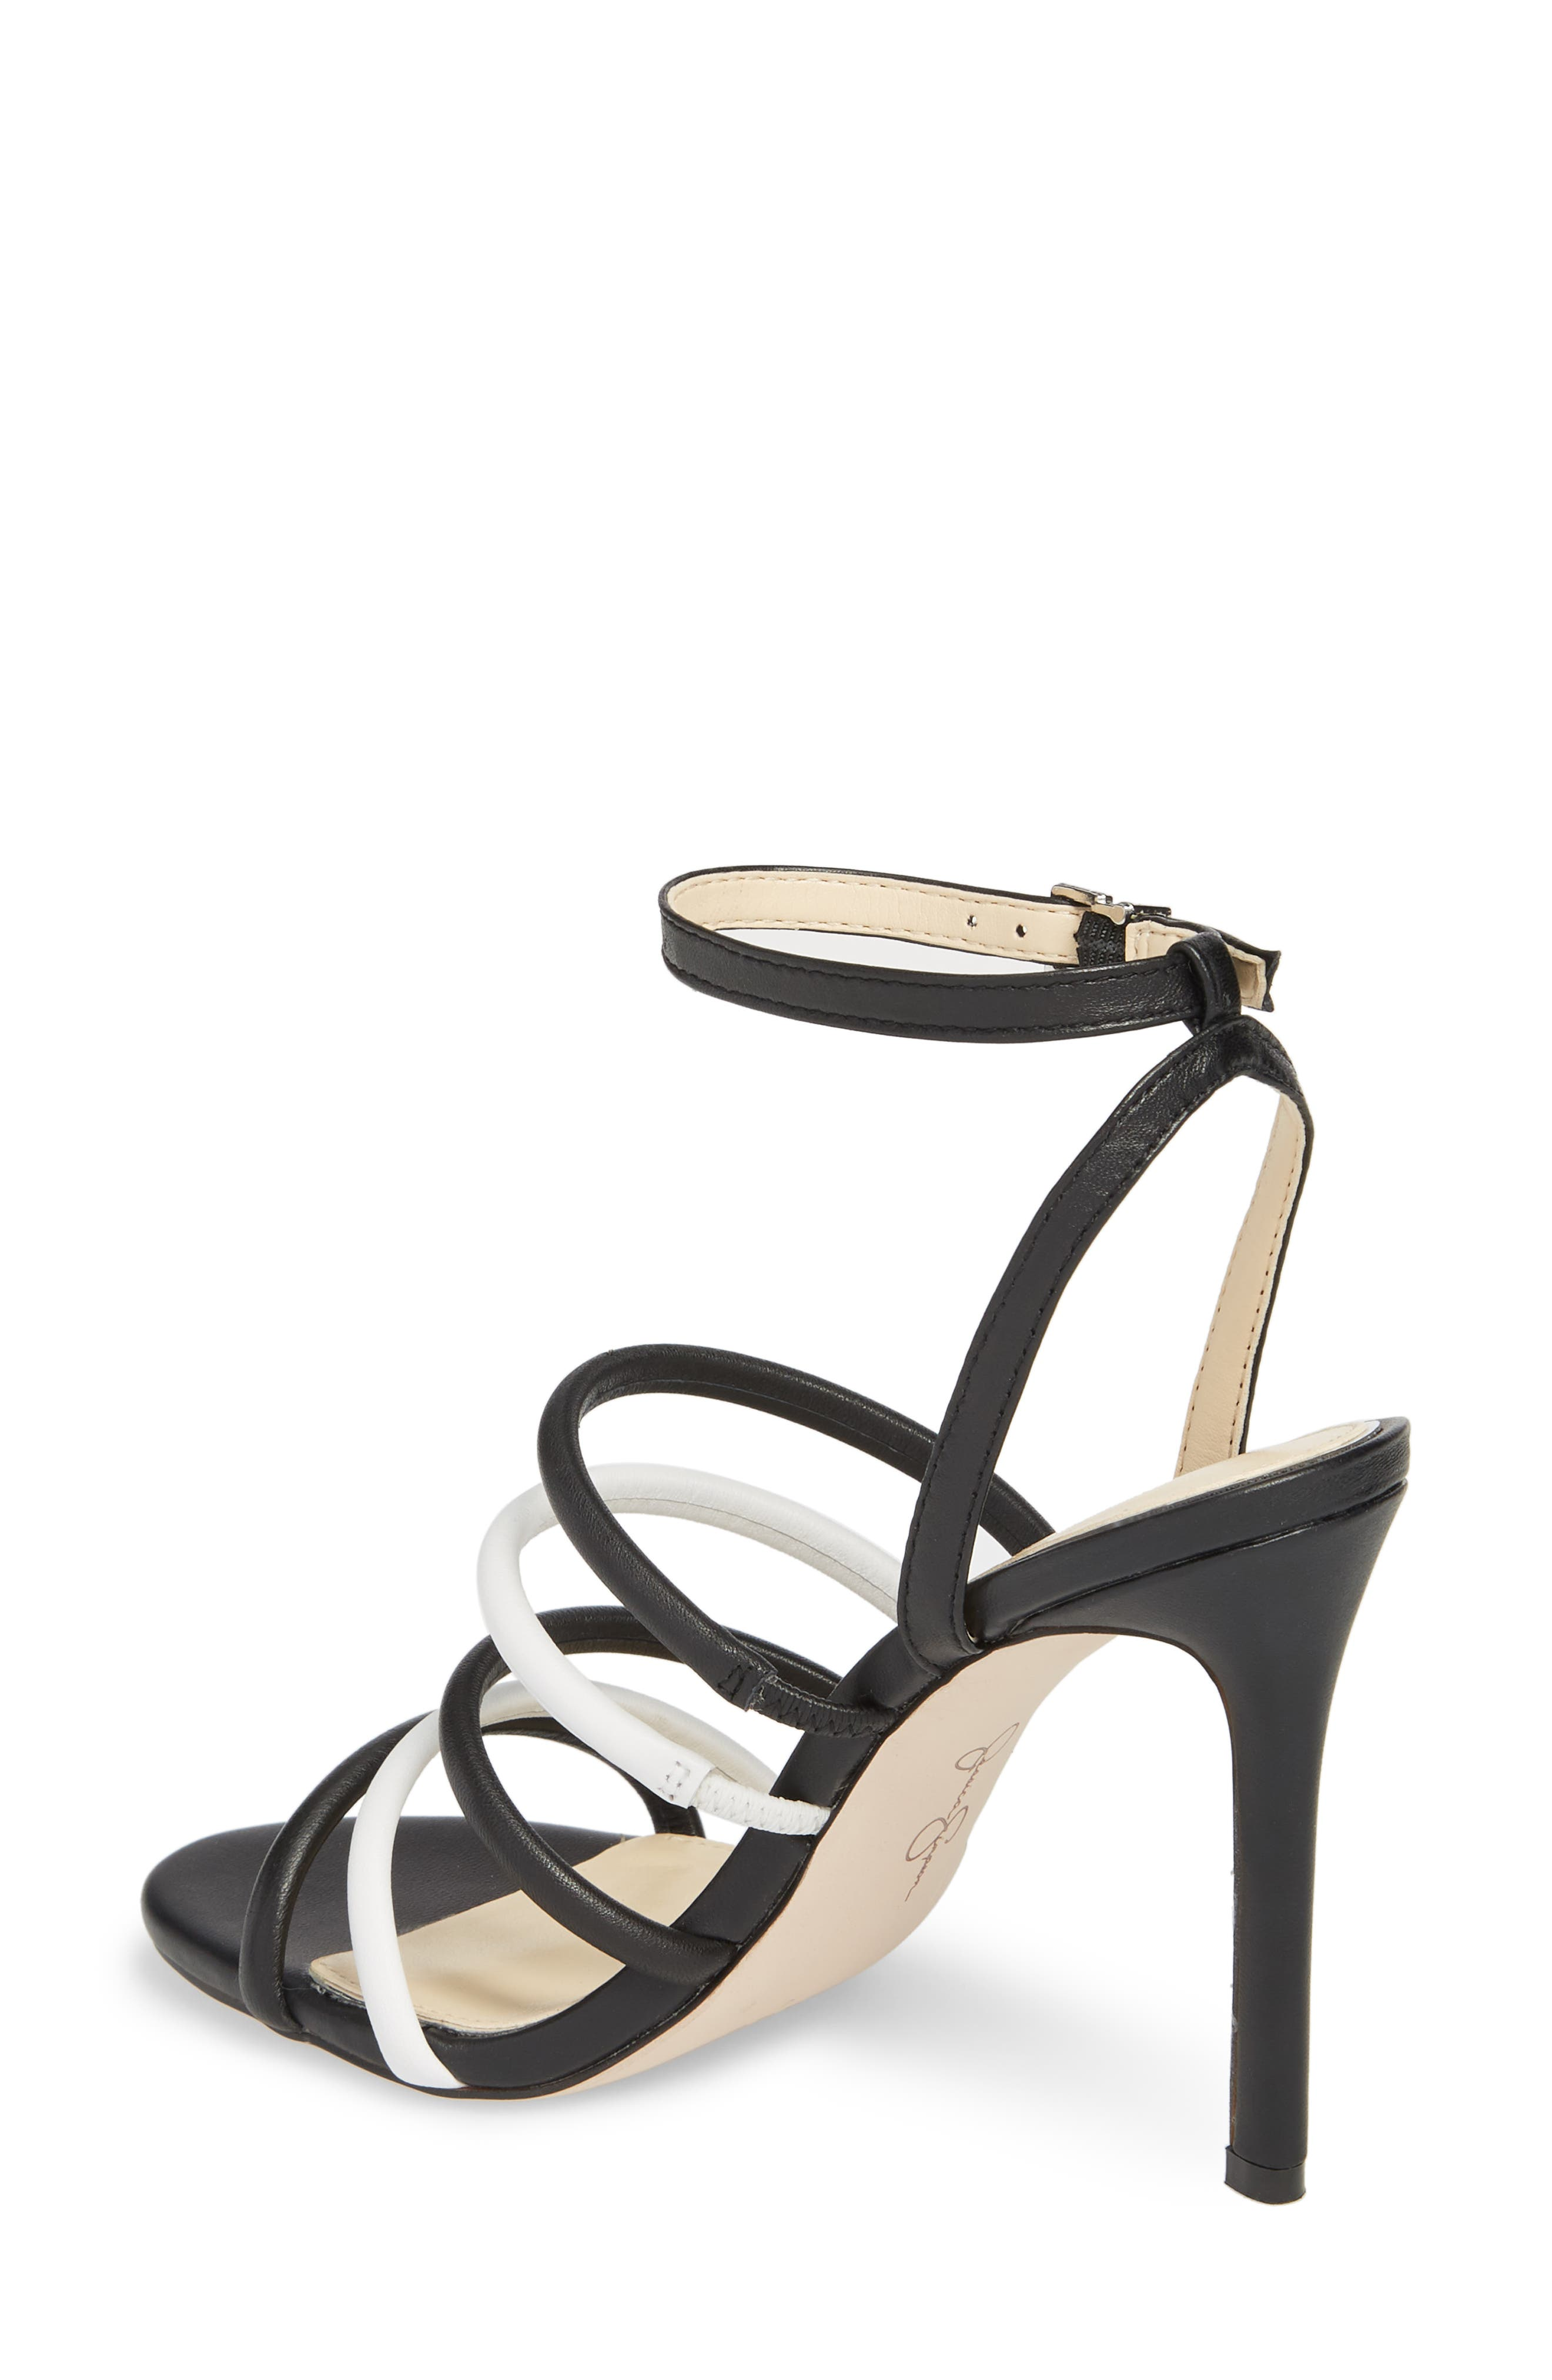 Joselle Strappy Sandal,                             Alternate thumbnail 4, color,